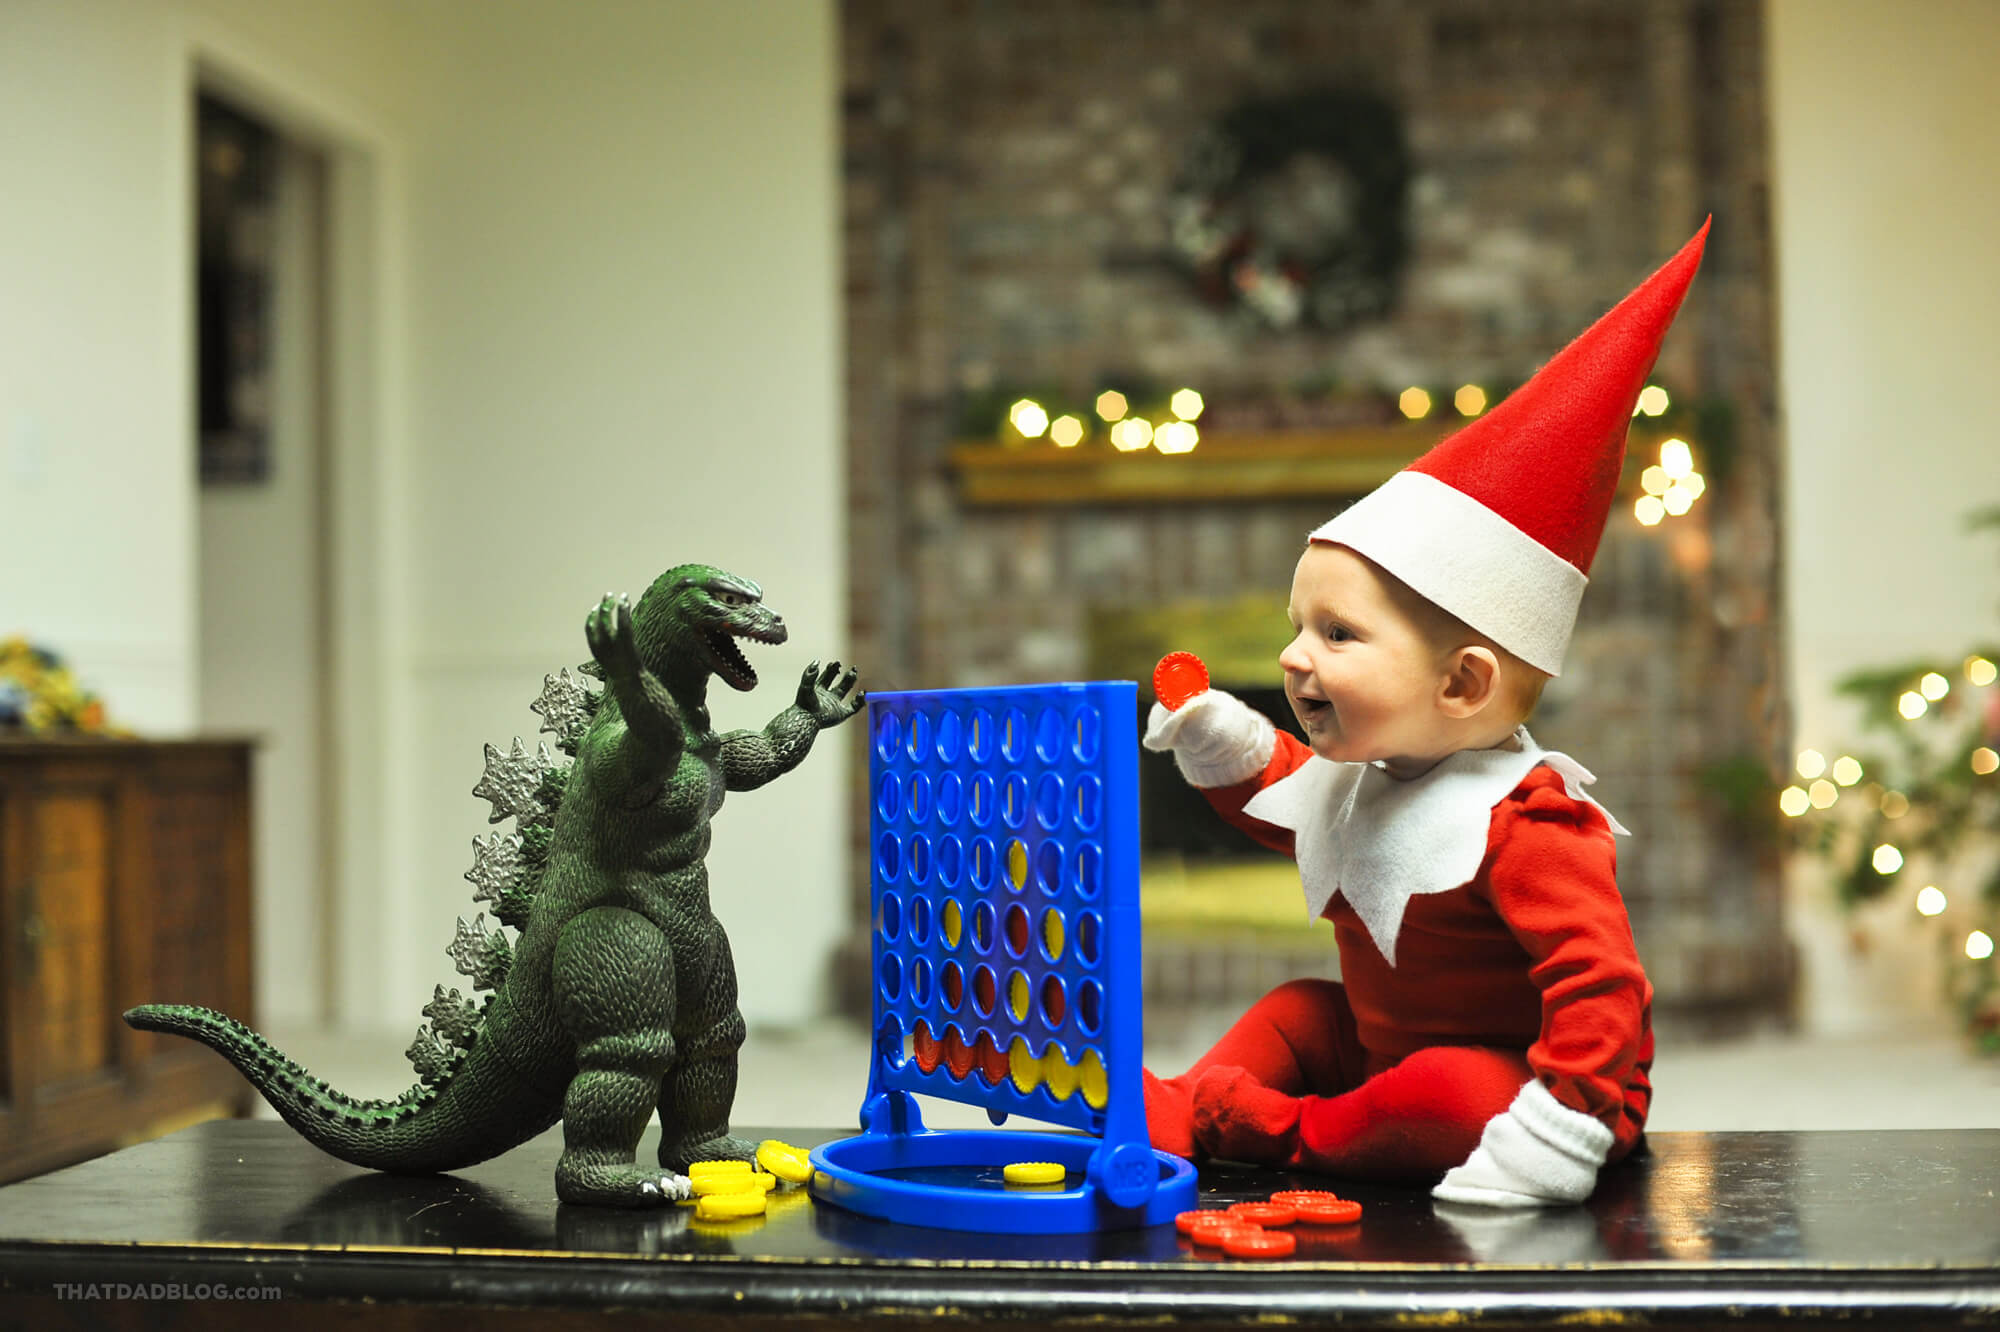 Elf on the shelf connect four